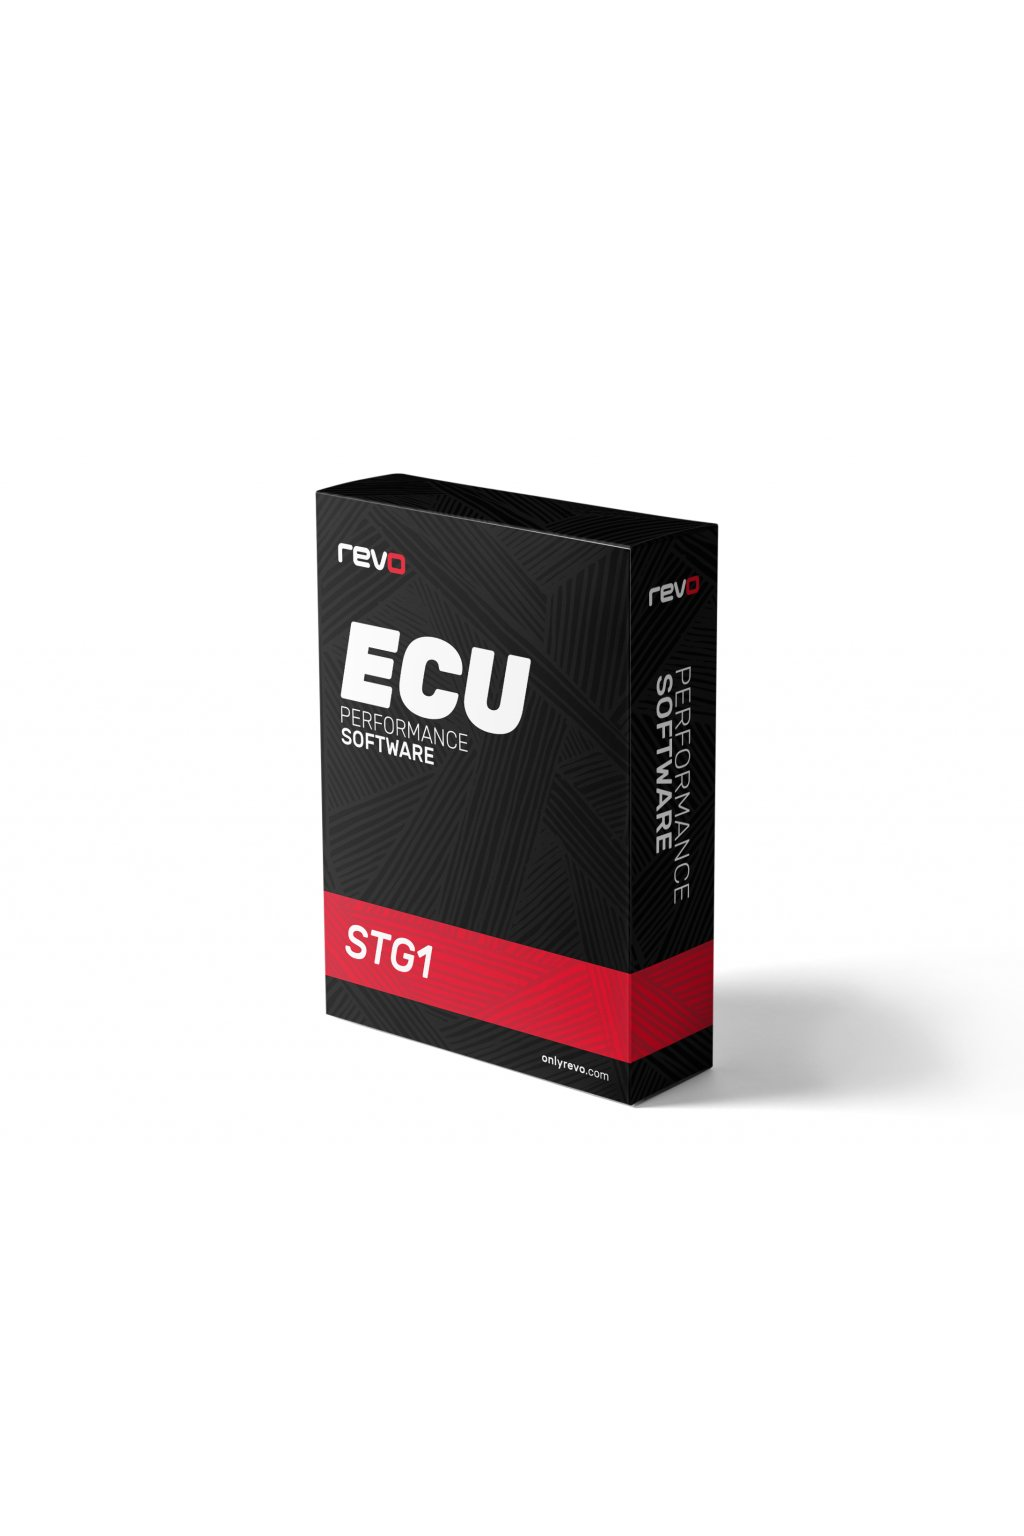 Revo ECU Software STG1